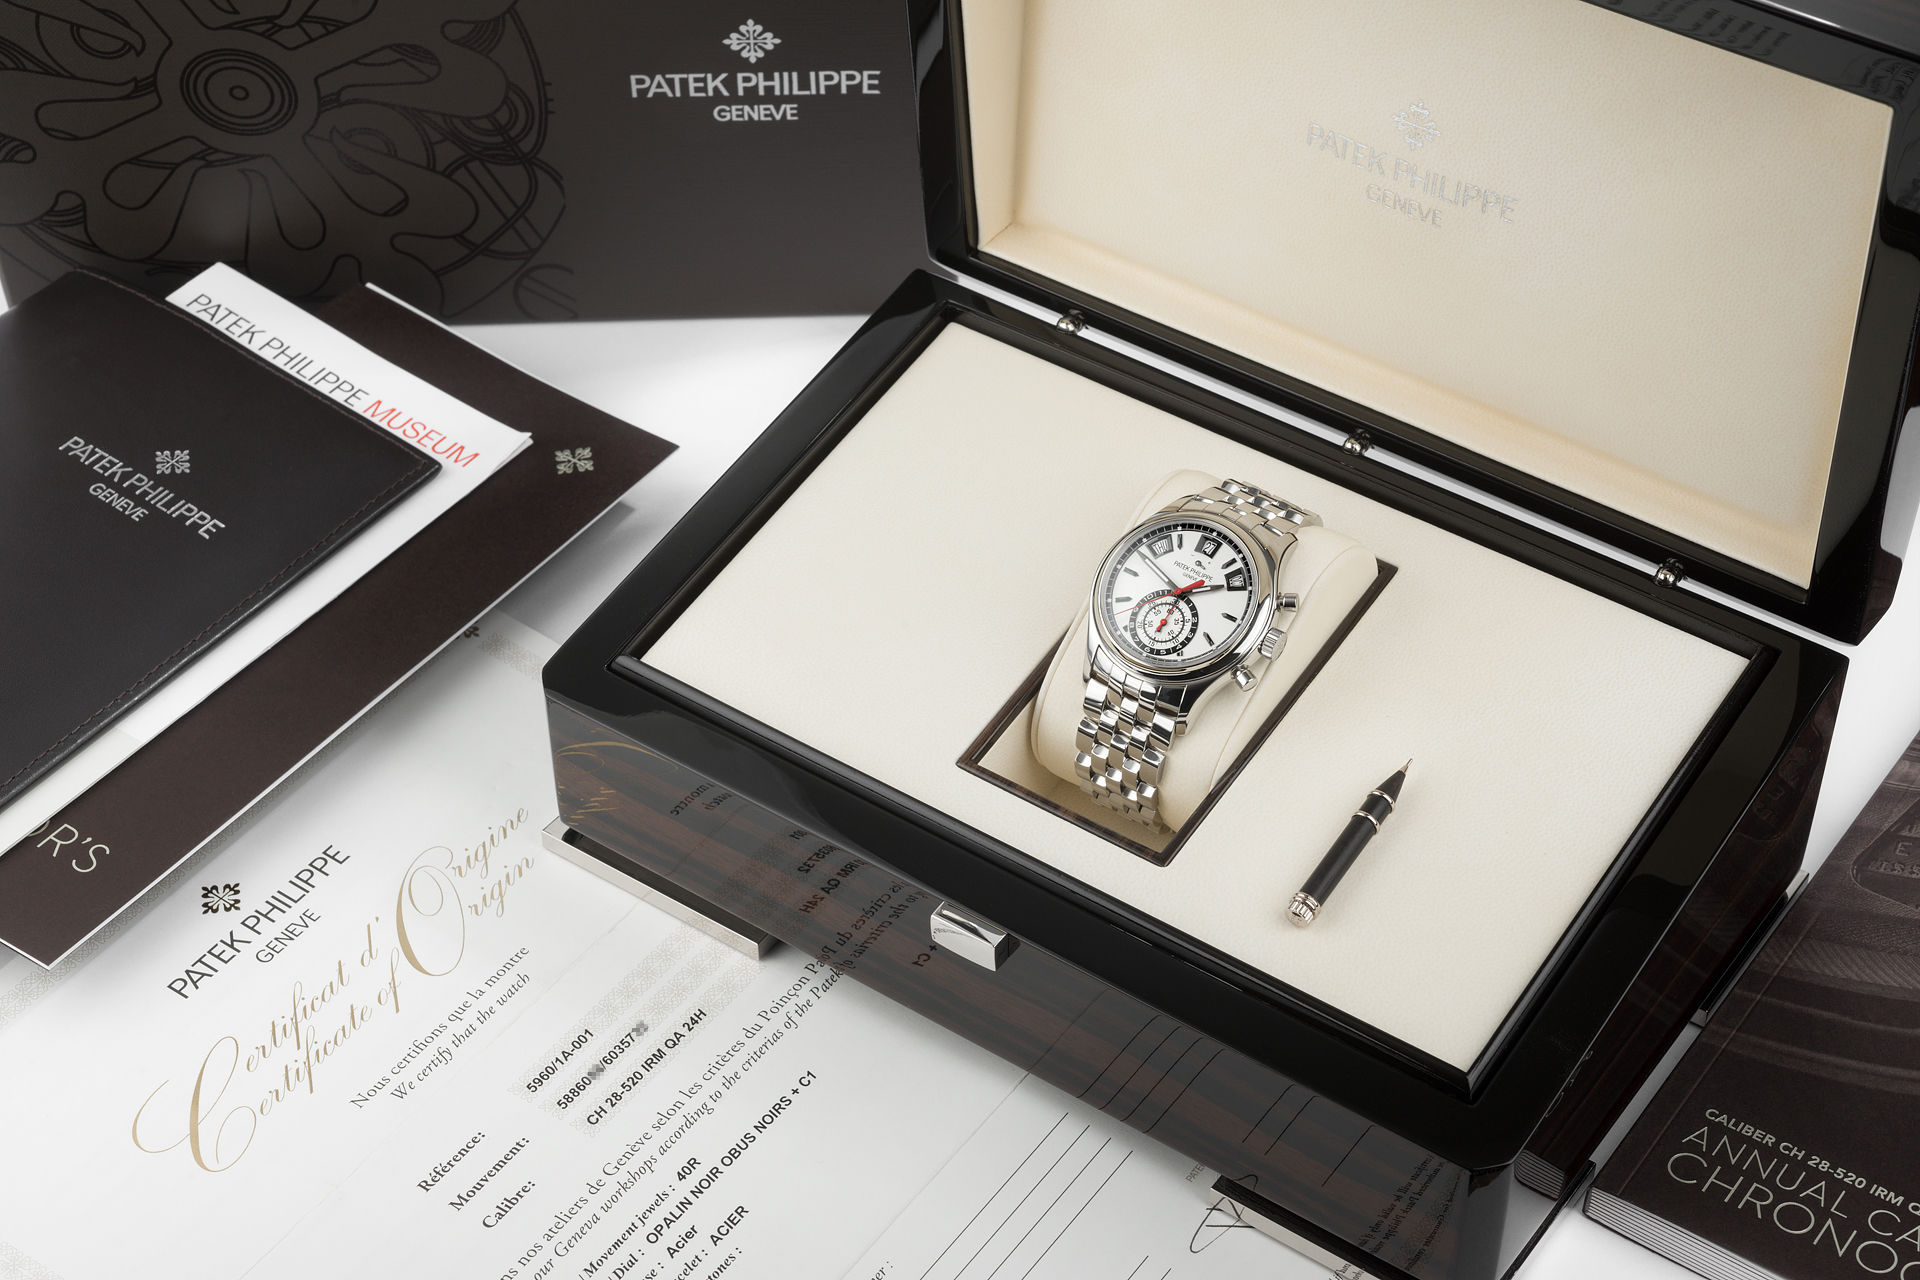 Stainless Steel Complete Set | ref 5960/1A-001 | Patek Philippe Annual Calendar Chronograph